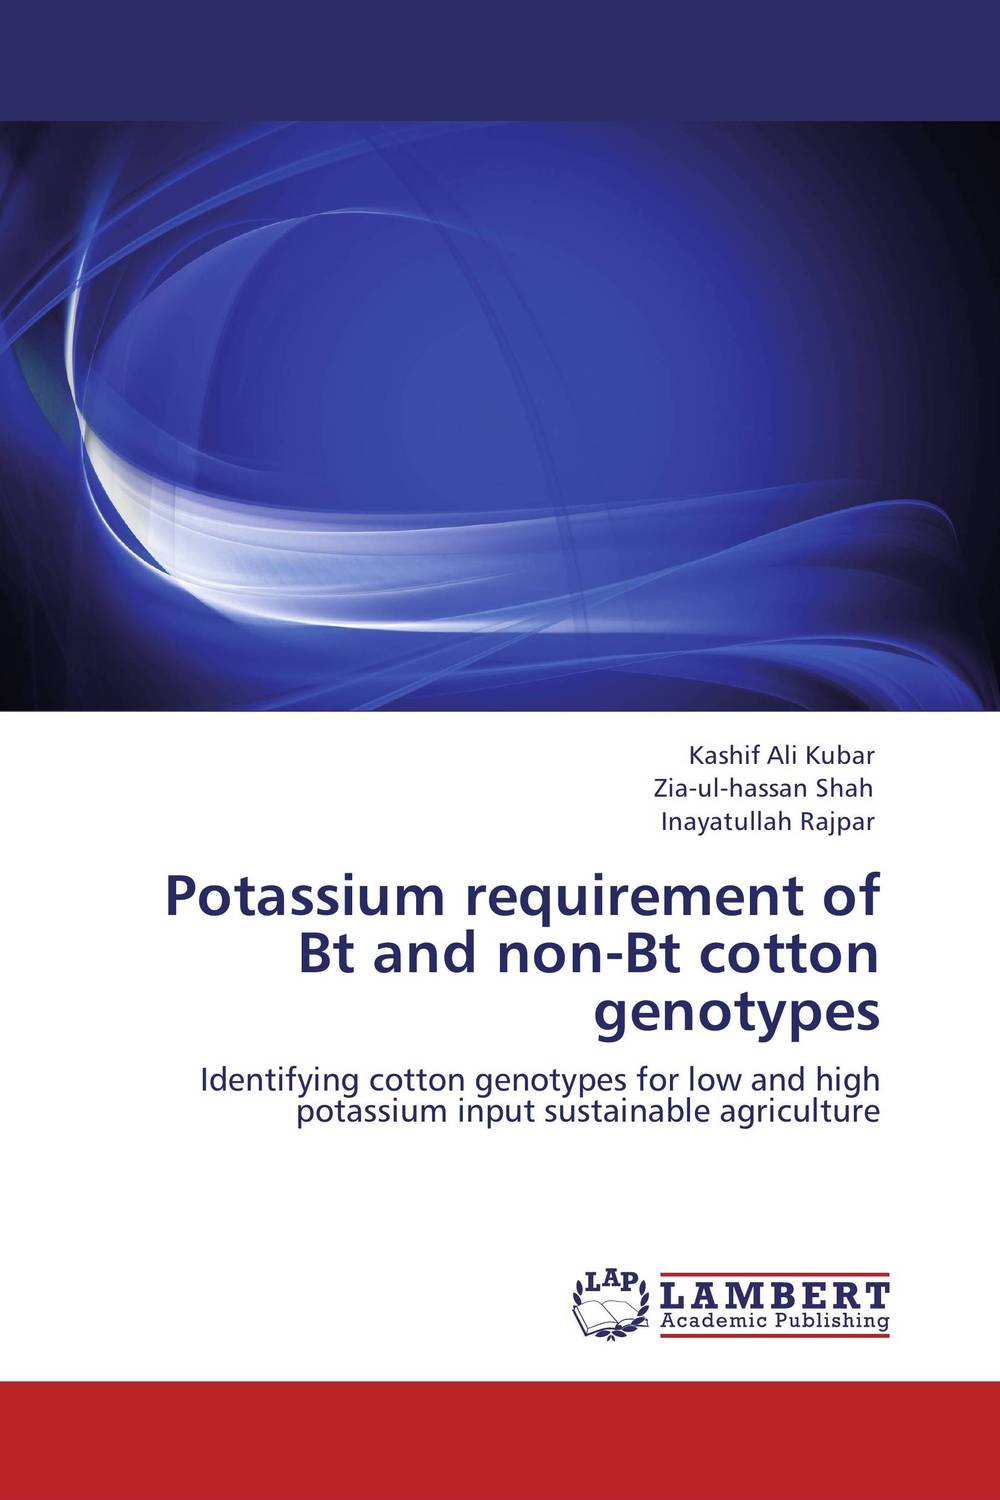 Potassium requirement of Bt and non-Bt cotton genotypes